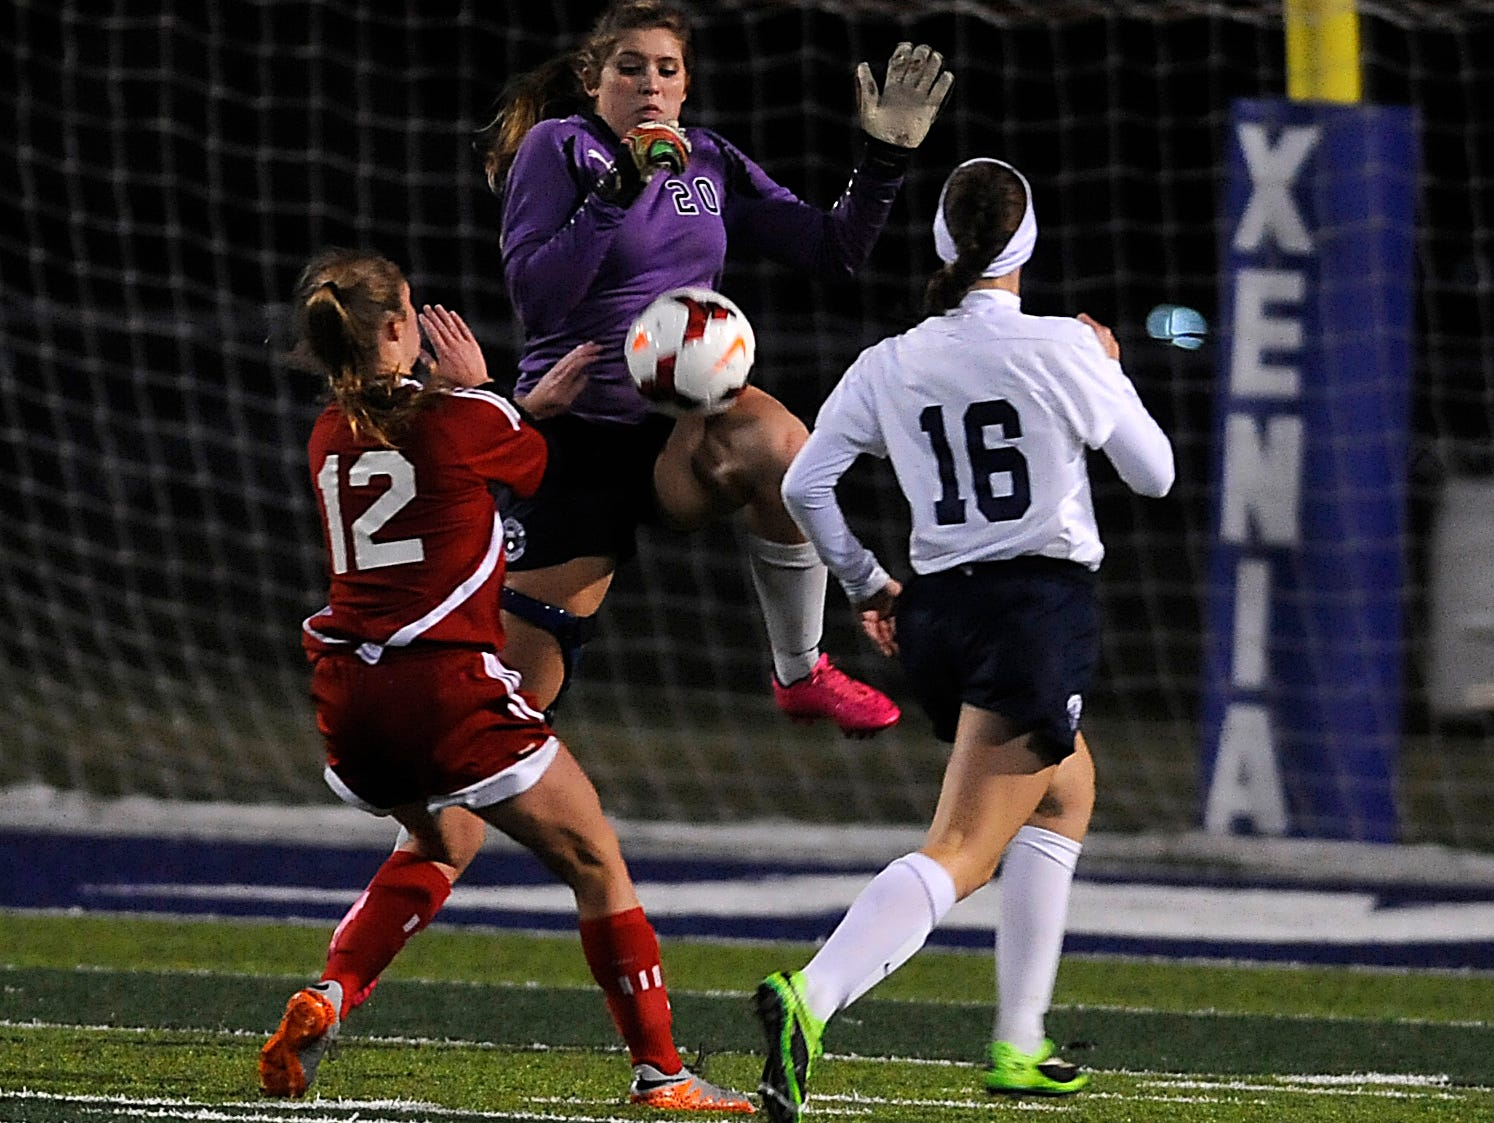 Granville goalkeeper Tori Long blocks a shot from Indian Hill Anna Podojil as defender Emily Kauchak recovers back. Long battled through injuries to help secure Granville's spot in the Division II State Championship with ten saves. They play number one Akron Hoban for the title Friday.